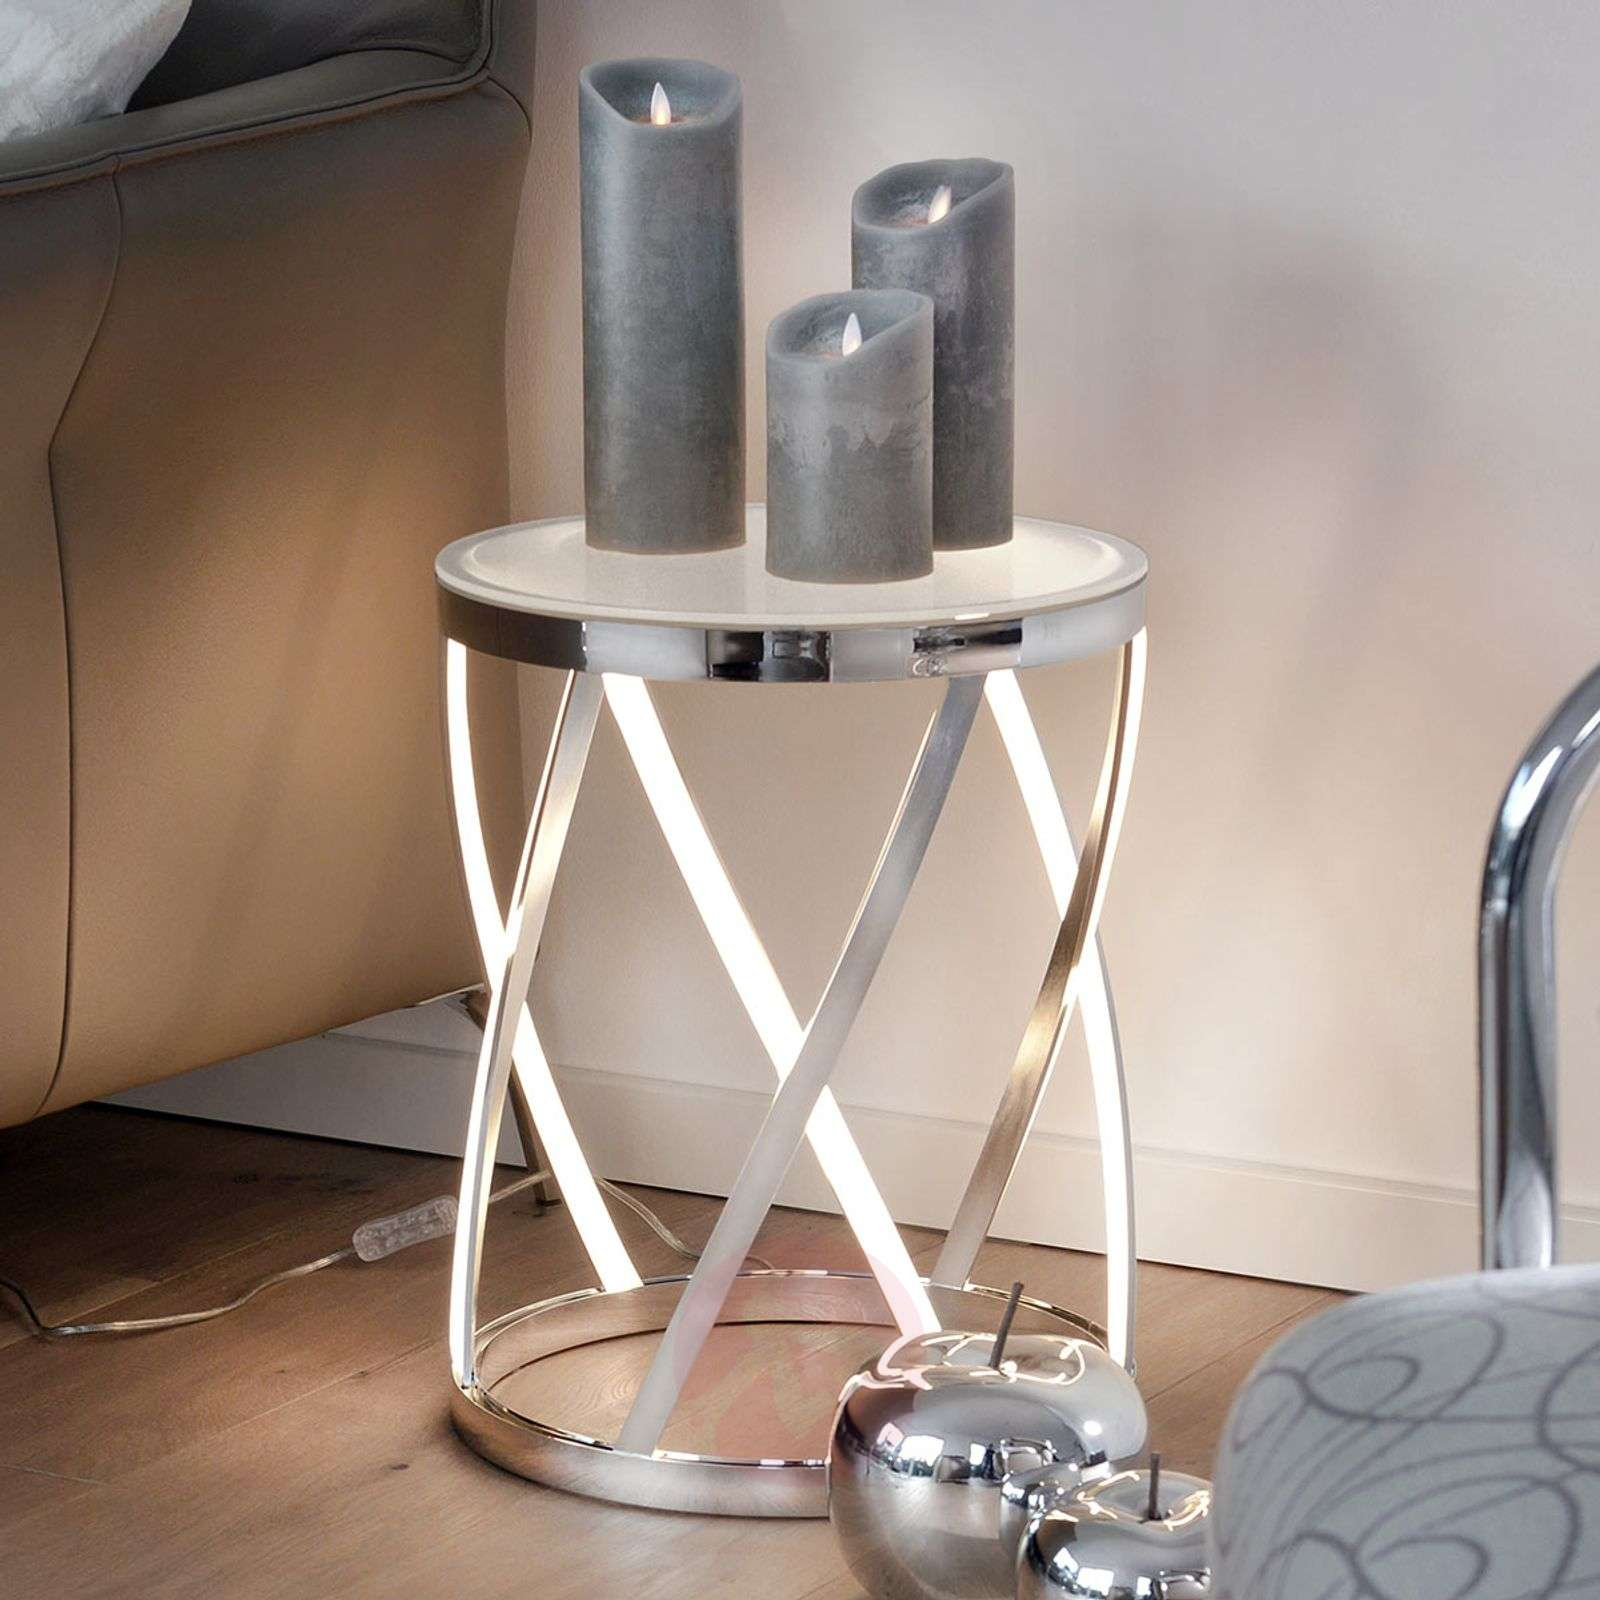 Source lumineuse et table d'appoint Rumpu